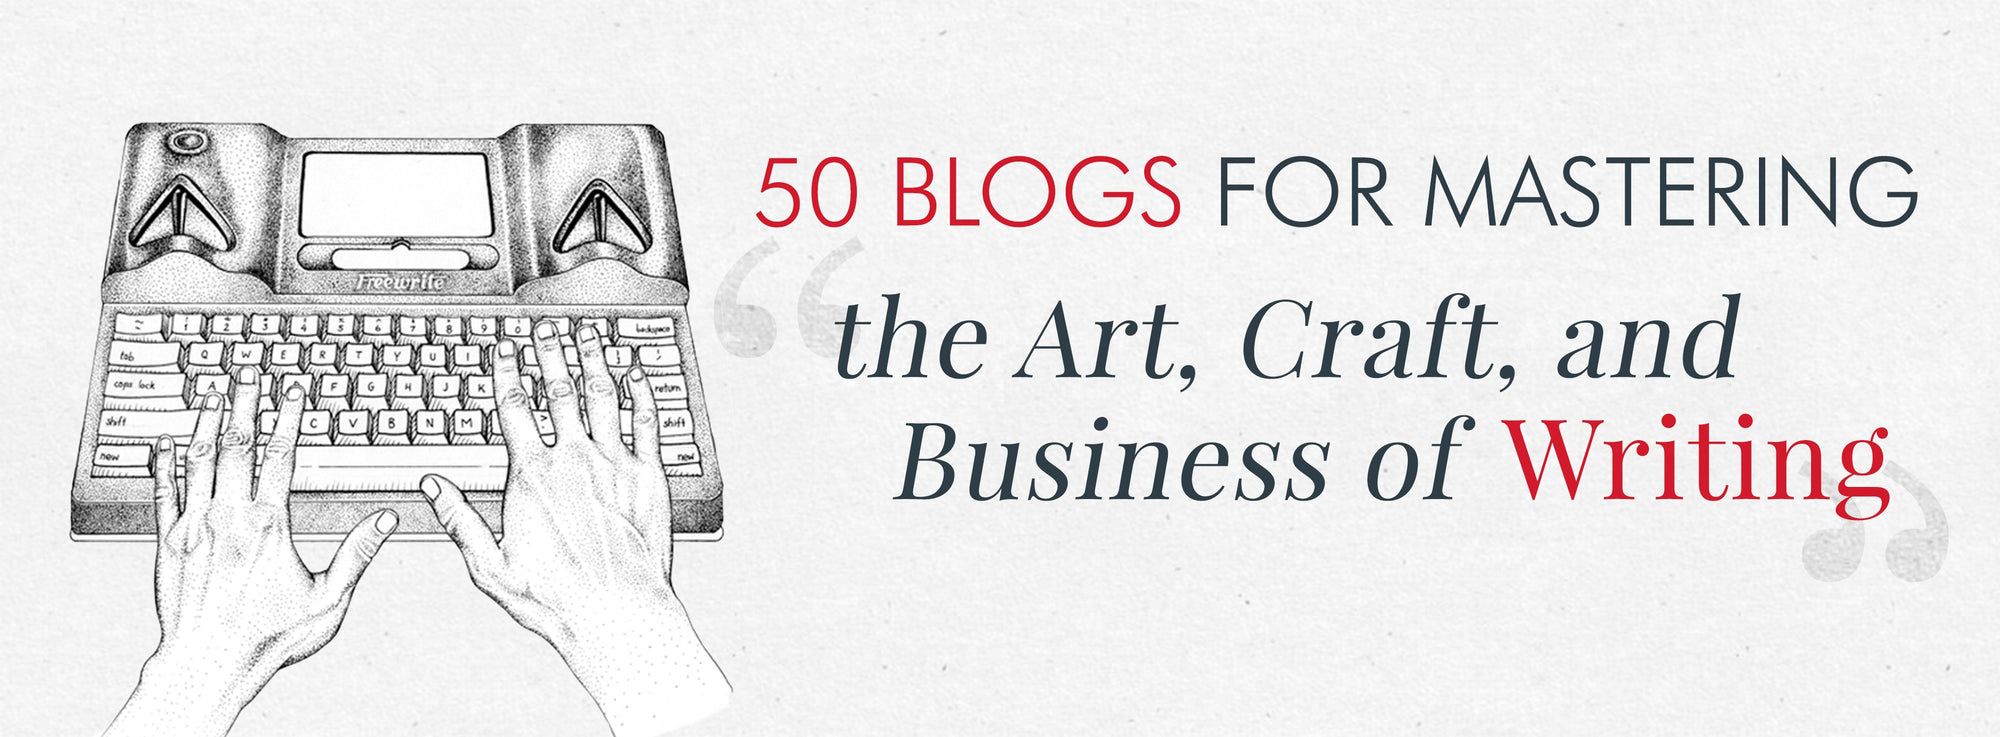 50 Blogs for Mastering the Art, Craft, and Business of Writing